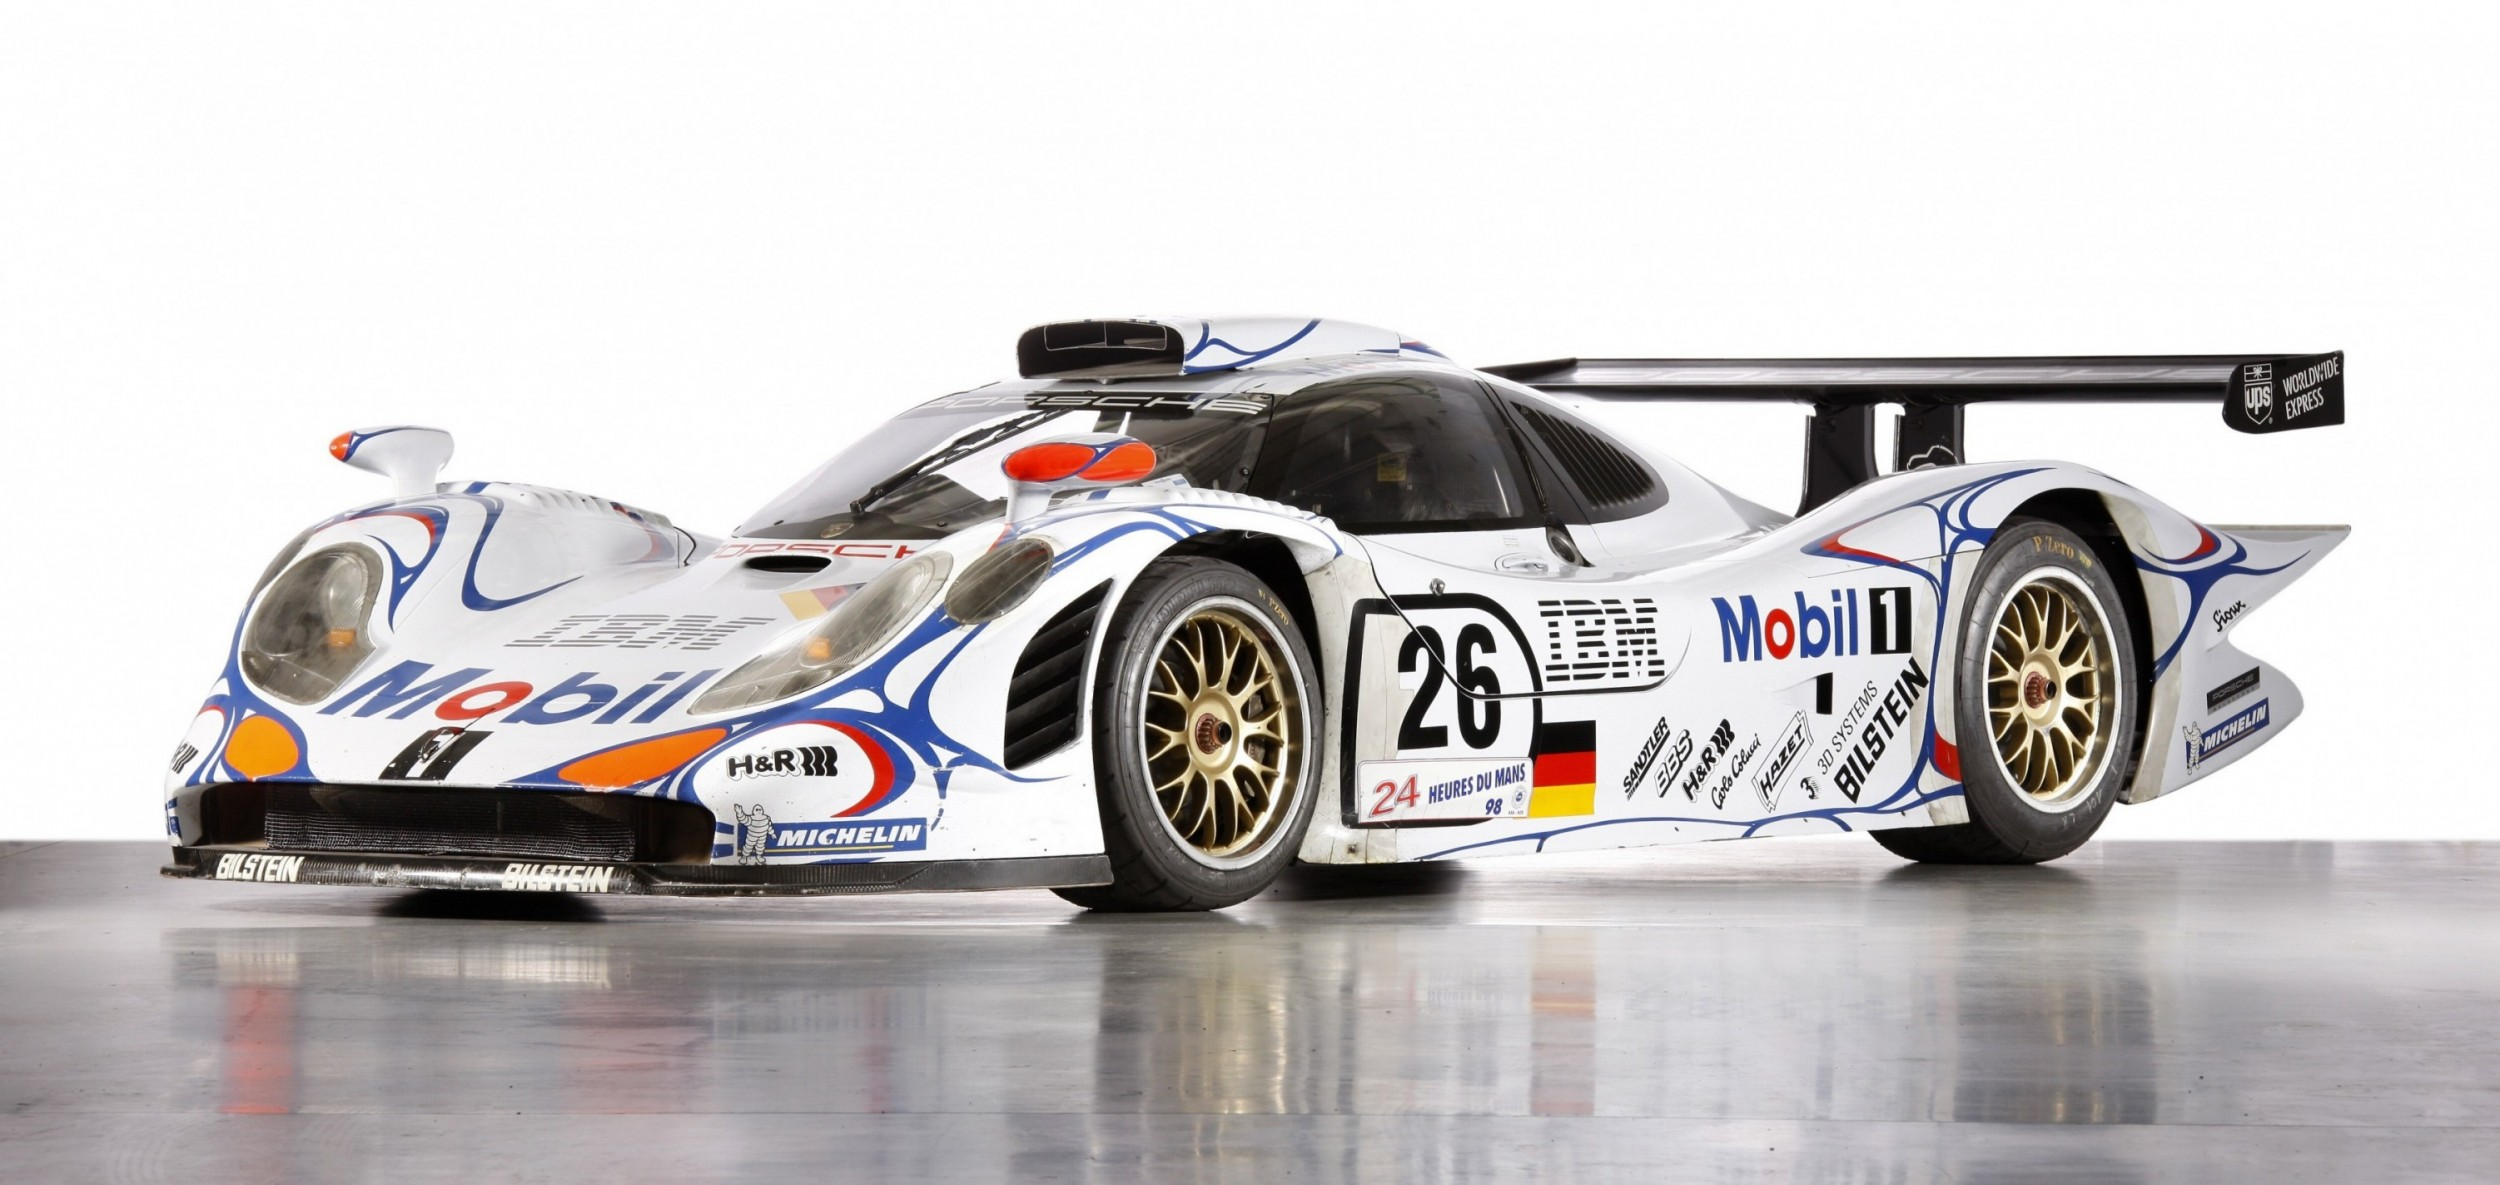 porsche 911 gt1 1998 winner le mans. Black Bedroom Furniture Sets. Home Design Ideas